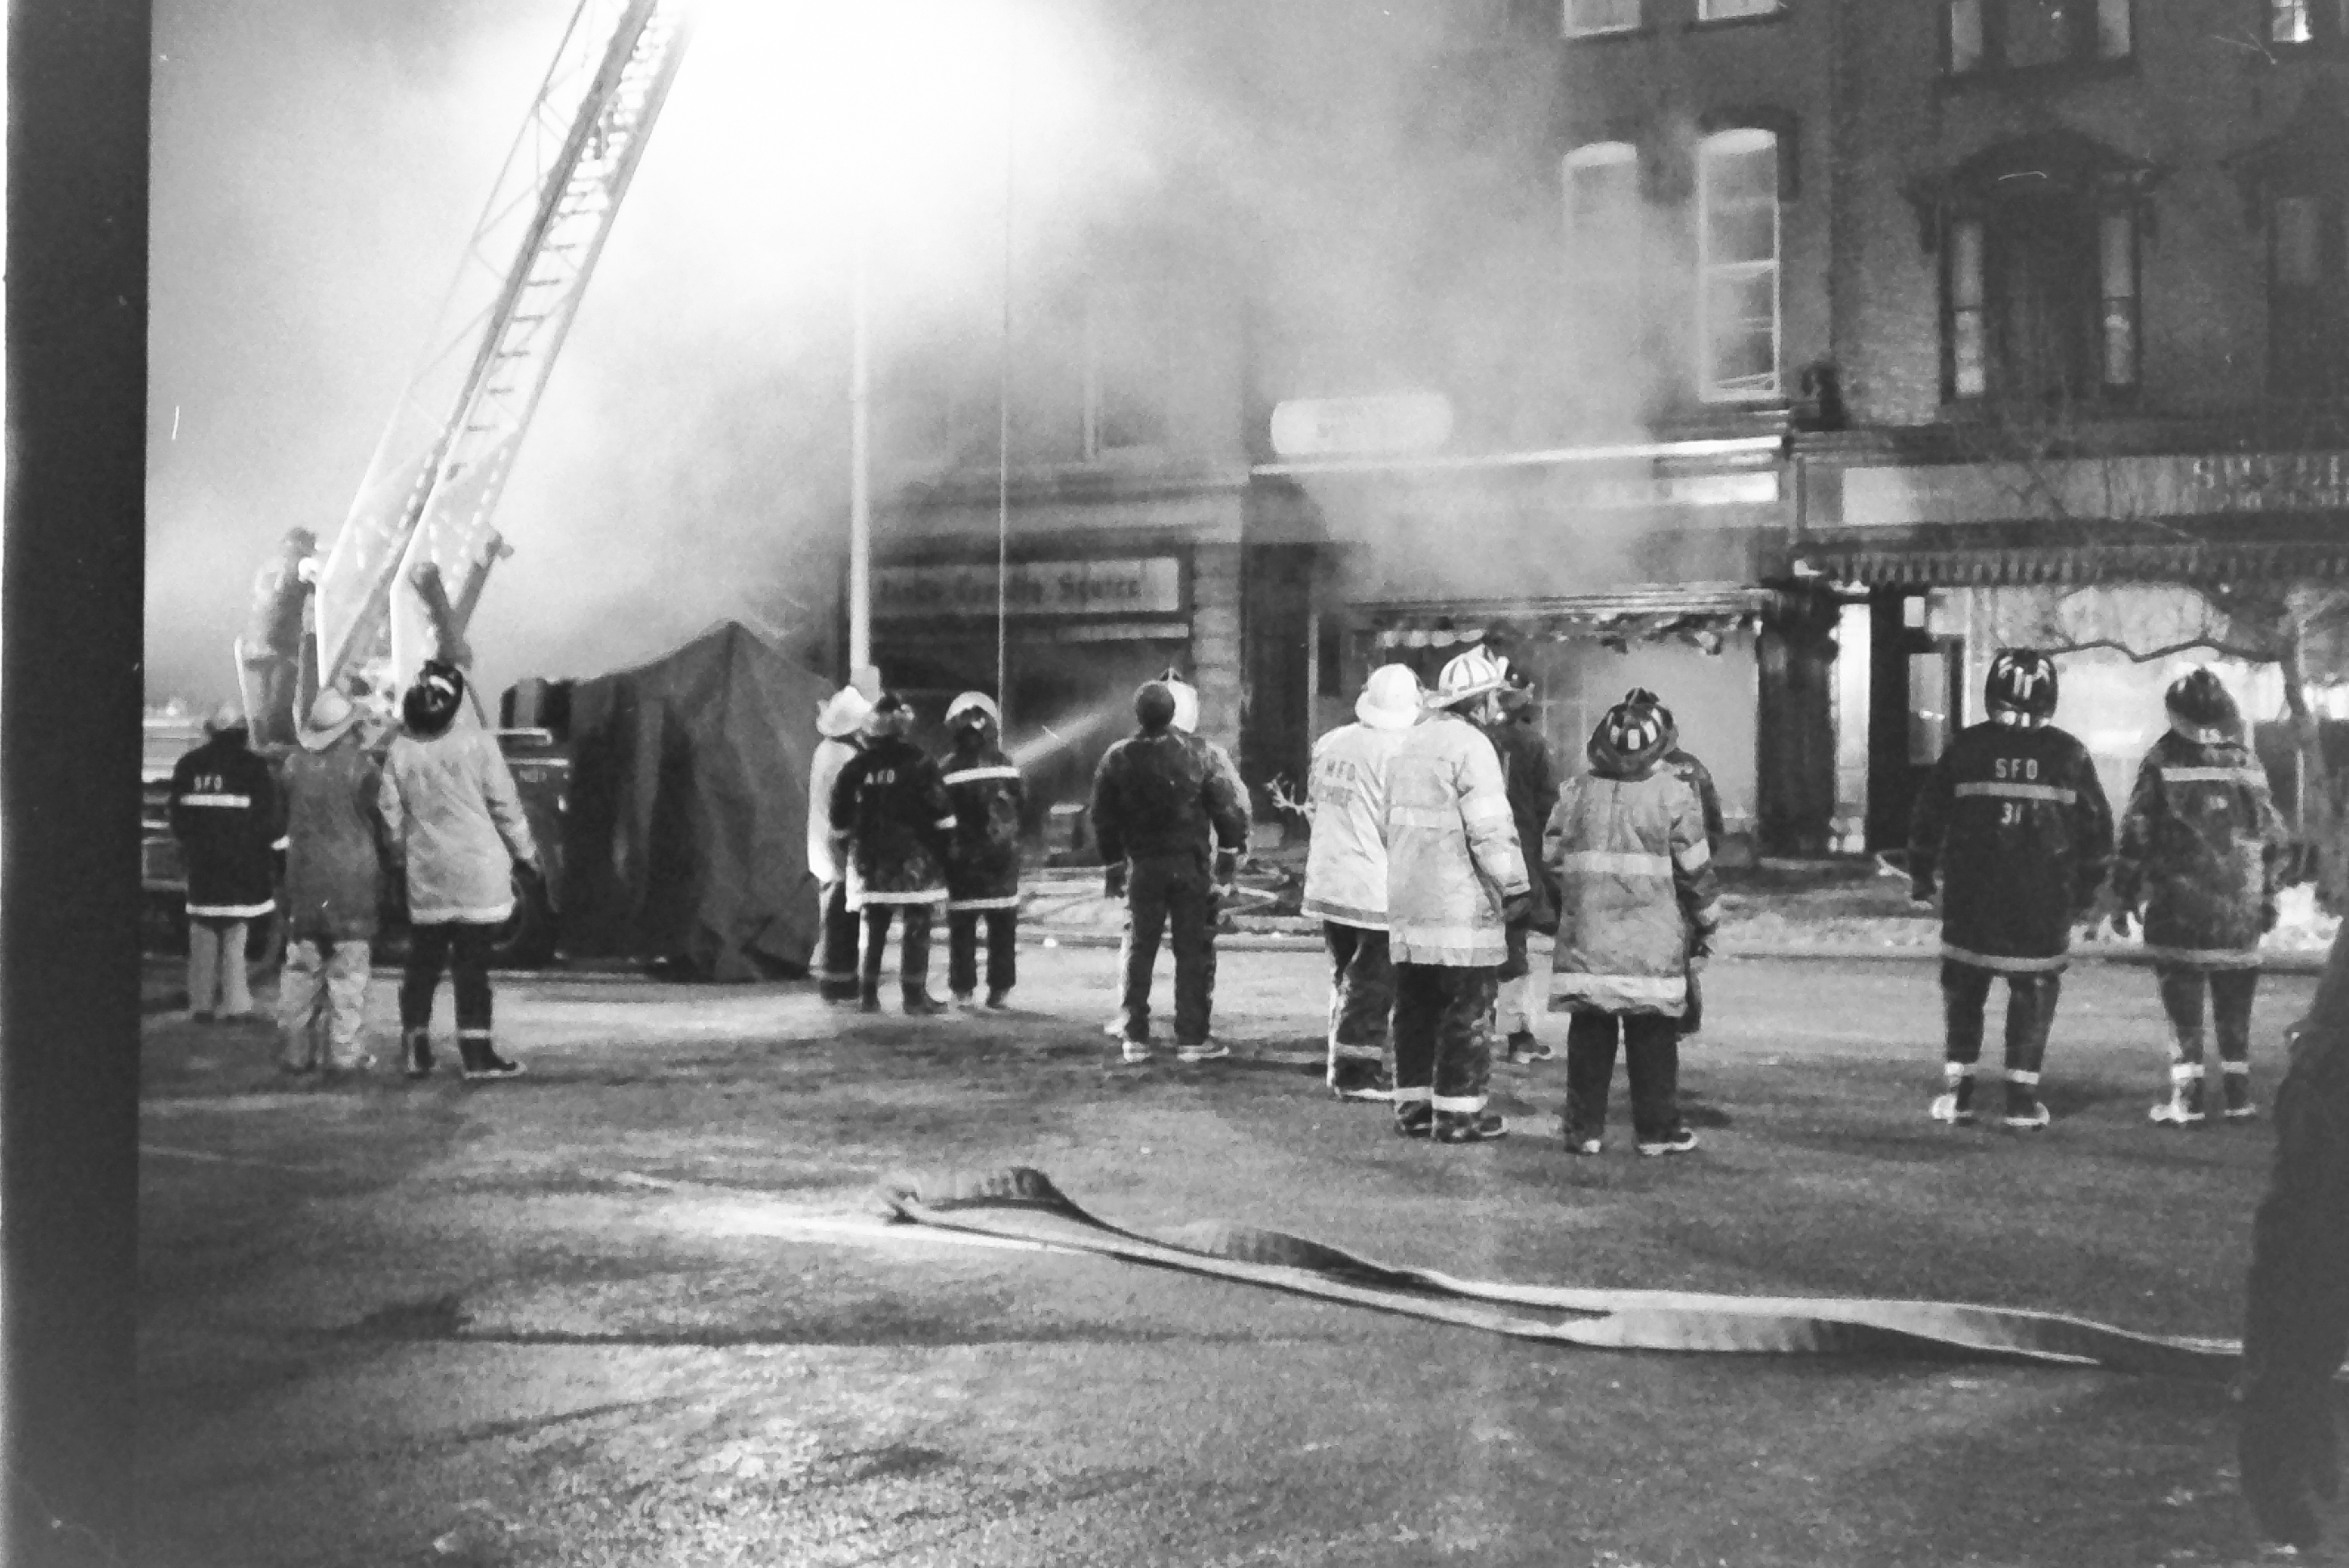 """The Lakeville Journal occasionally covers stories outside of its six major towns, such as Norfolk and Great Barrington. This fire in January 1985 (right) was on Main Street in Great Barrington. Historian and Lakeville Journal editor emeritus Bernard Drew identified the images for us (the photos were taken by North Canaan historian Kathryn Boughton, also an emeritus editor of The Lakeville Journal). Drew said """"the infamous Farshaw fire"""" was a multi-alarm blaze that destroyed retail buildings on Main Street. <em><strong>Photo by Kathryn Boughton</strong></em>"""